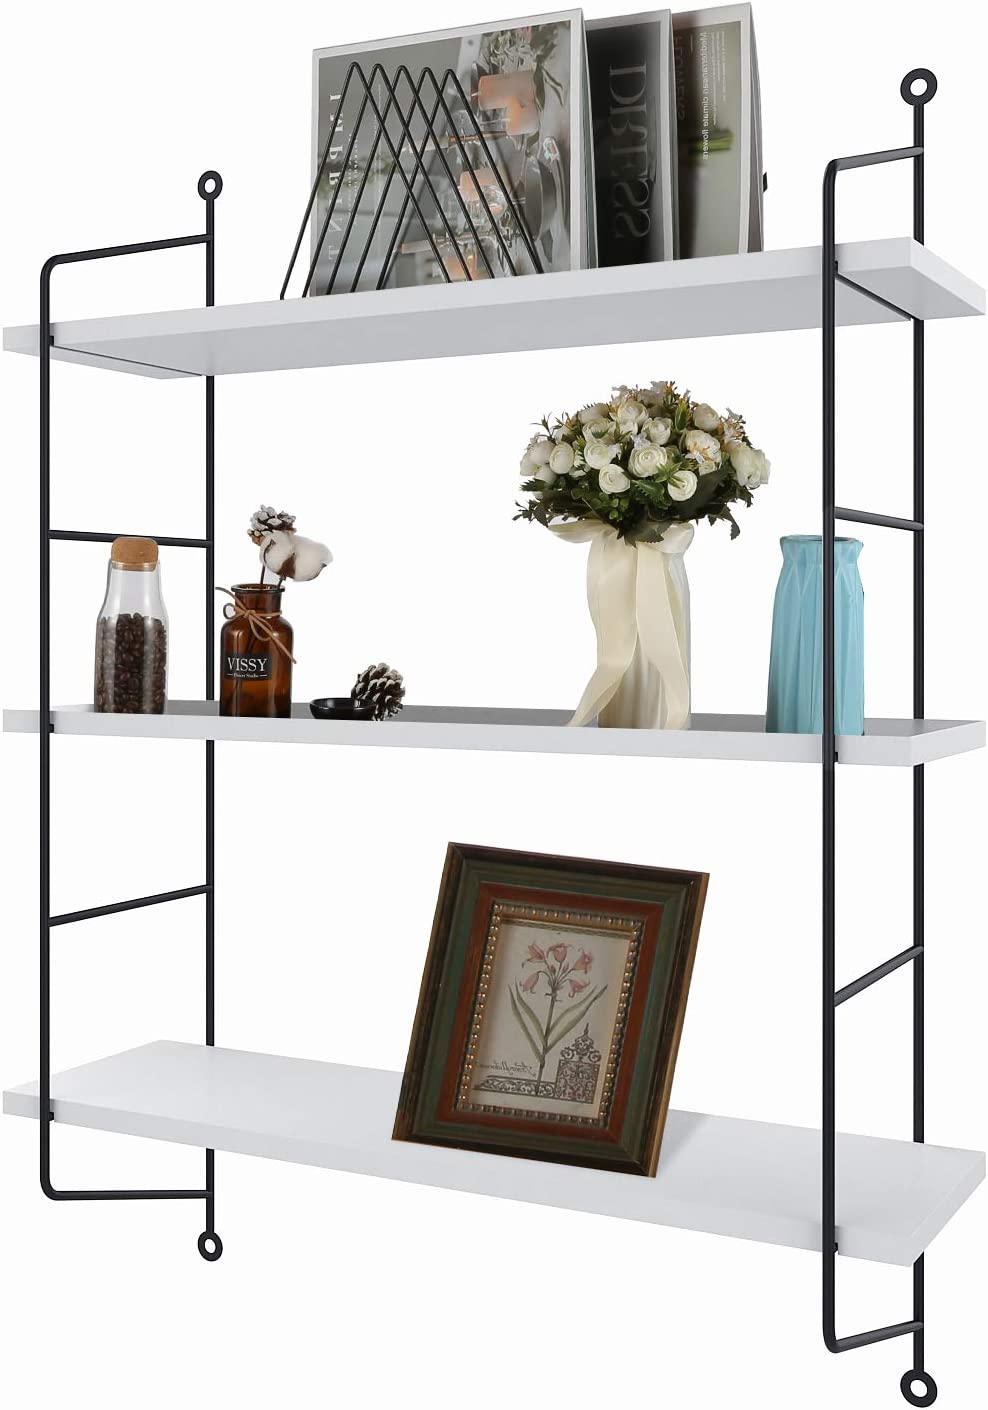 3-Tier Industrial Floating Shelves Wall Mounted Display Wall Shelf Storage Rack Wall Rack Holder Rack(White)